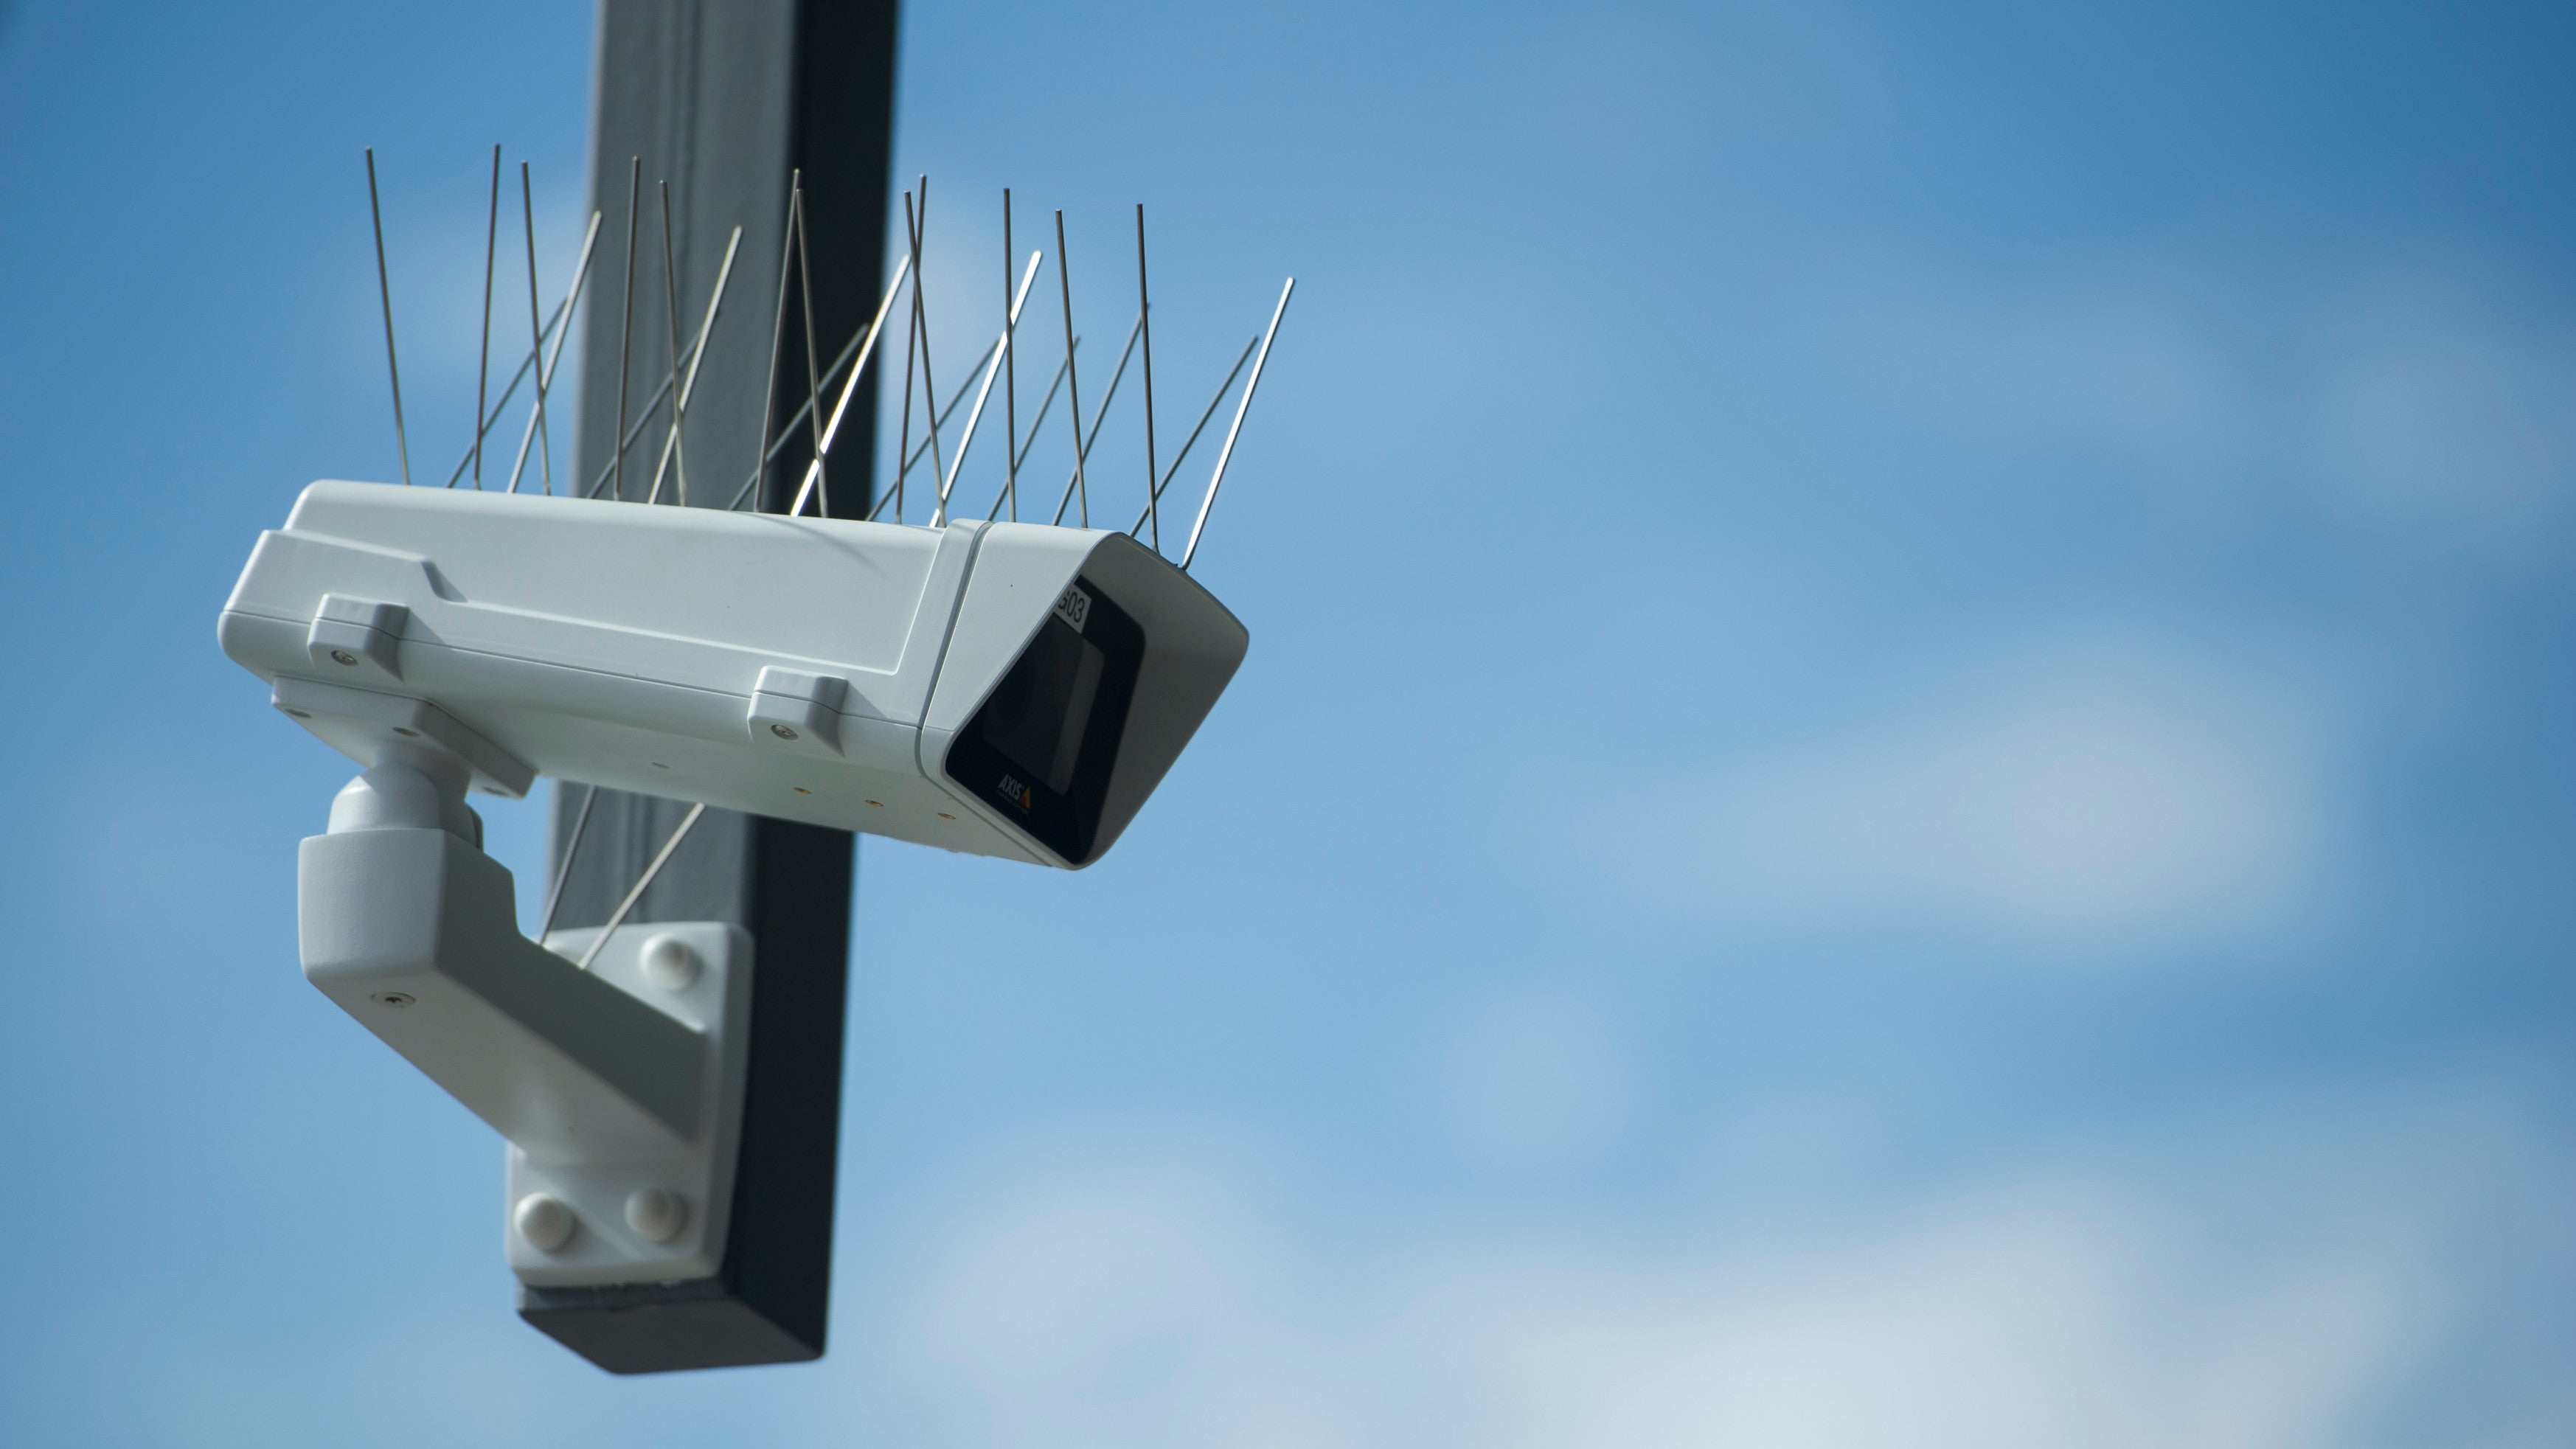 Oakland Becomes Third U.S. City To Ban Government Use Of Face Recognition Tech